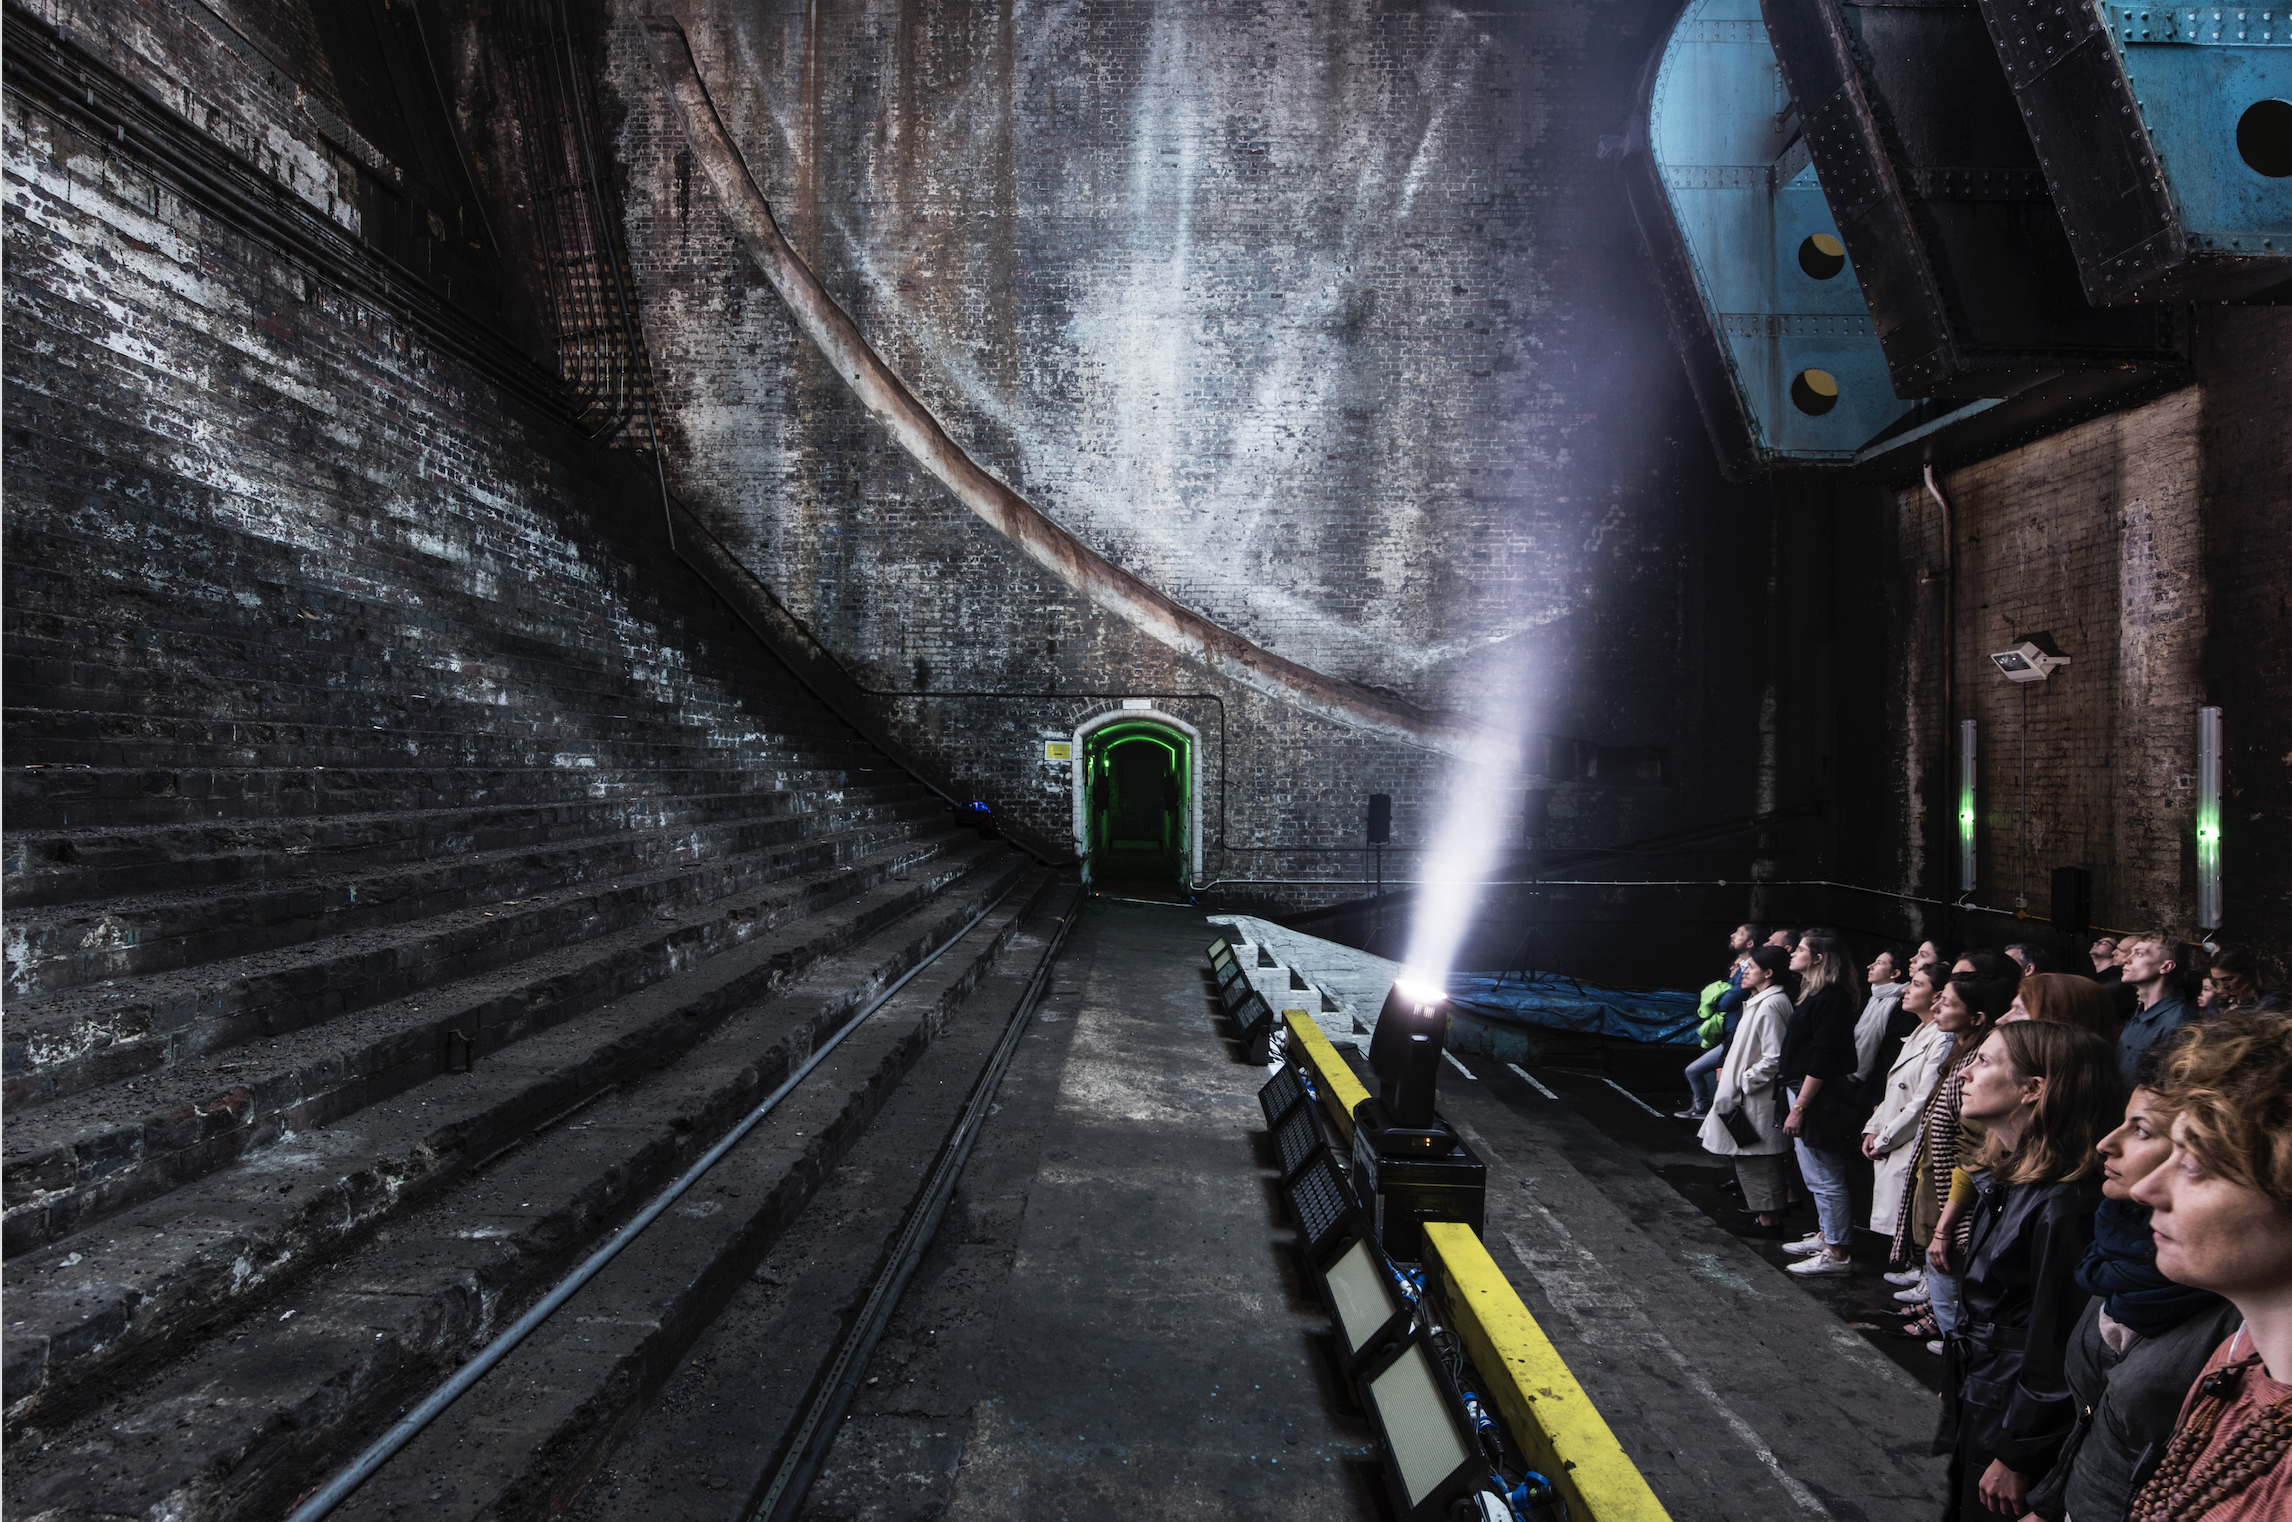 Ian Whittlesea, Becoming Invisible (2017) at Bascule Chamber, Tower Bridge. Art Night 2017. Photo by Thierry Bal.